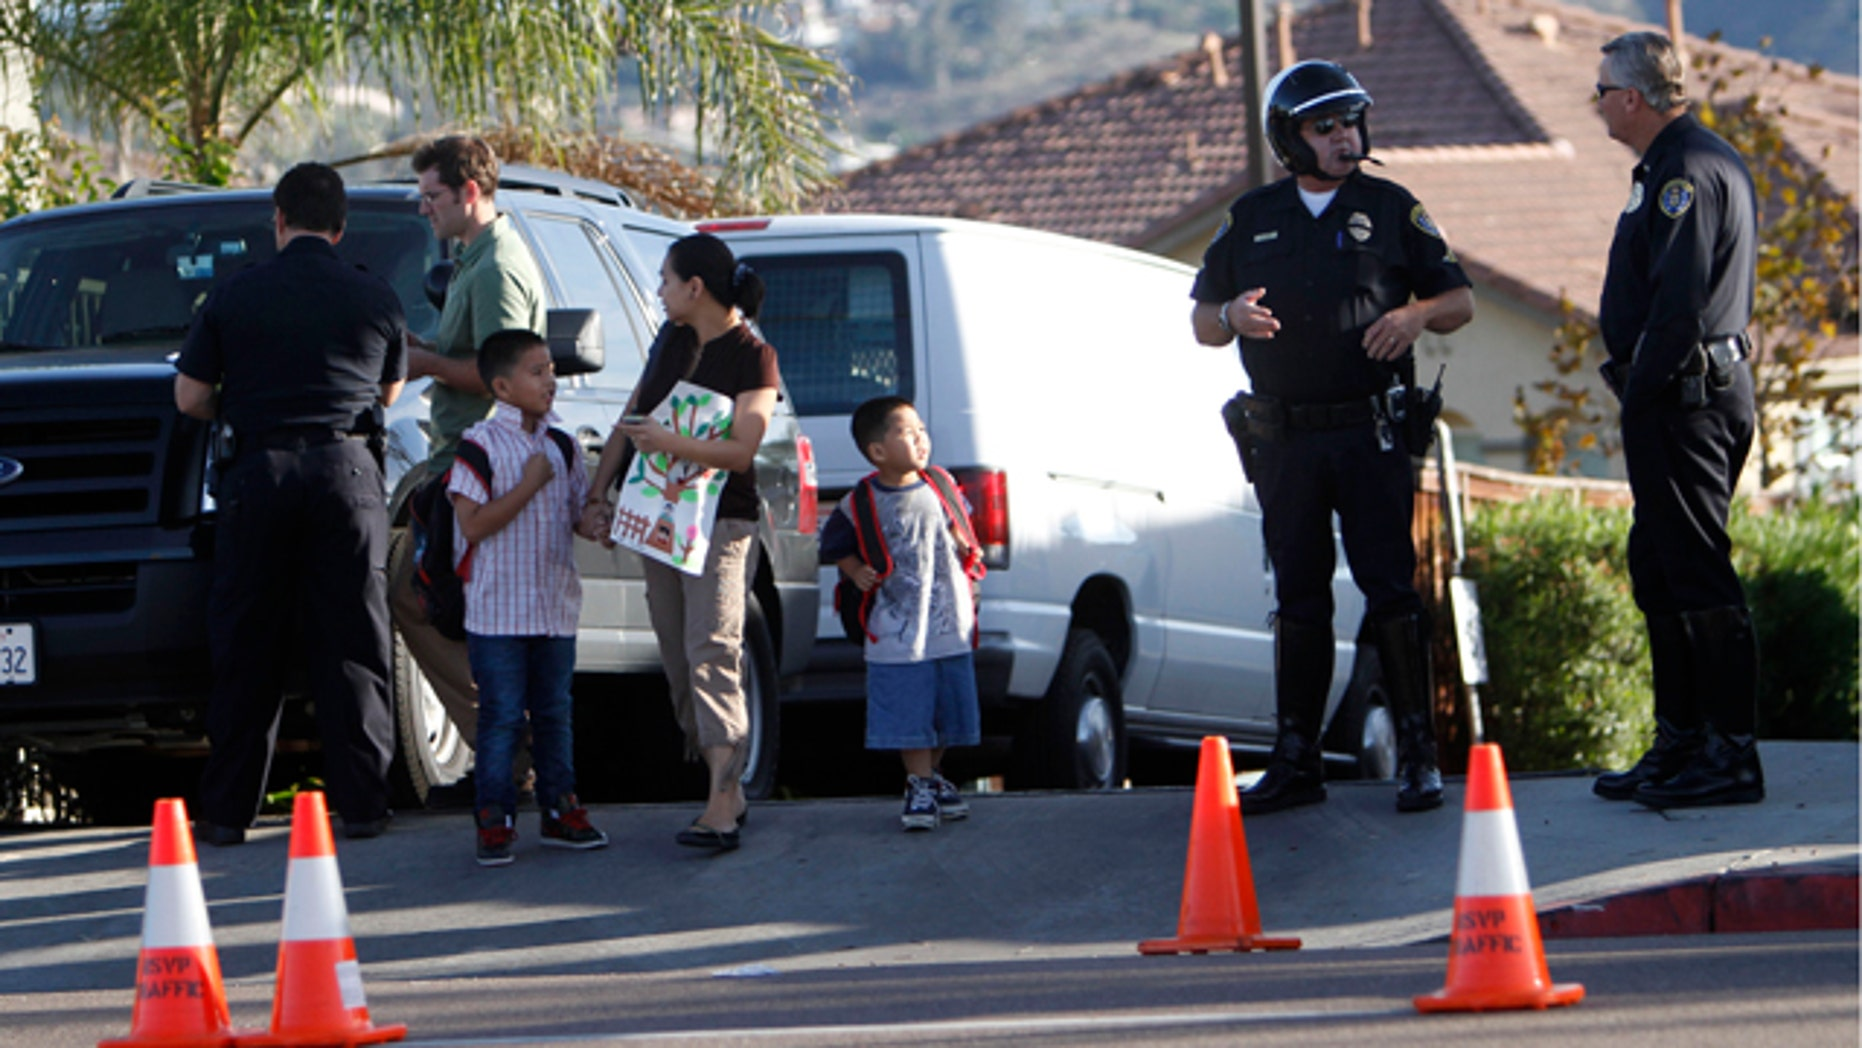 Oct. 28: A woman walks her children out of an apartment complex and past San Diego police officers where a shootout resulted in the death of a police officer, his suspected killer and another person.